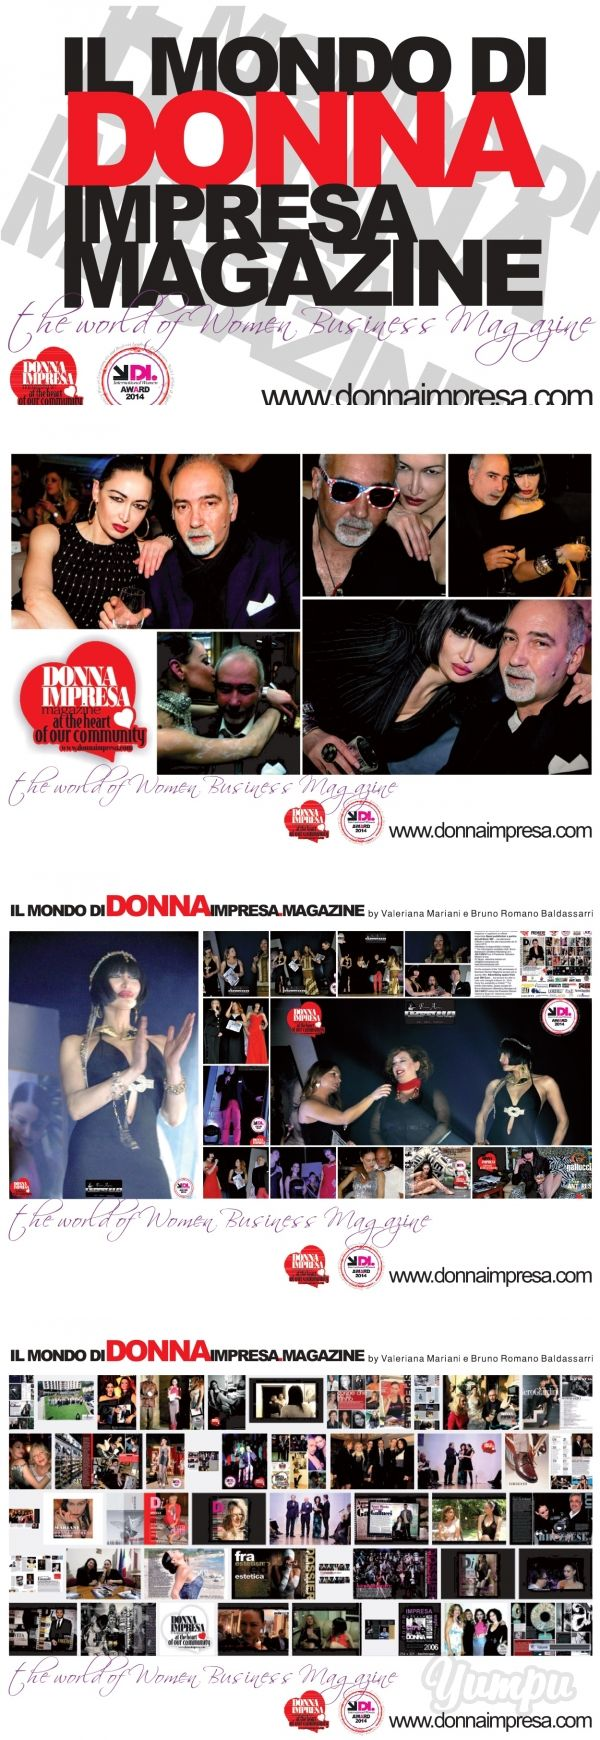 IL MONDO DI DONNA IMPRESA 2015 since 2006 - Magazine with 13 pages: Il Mondo di…